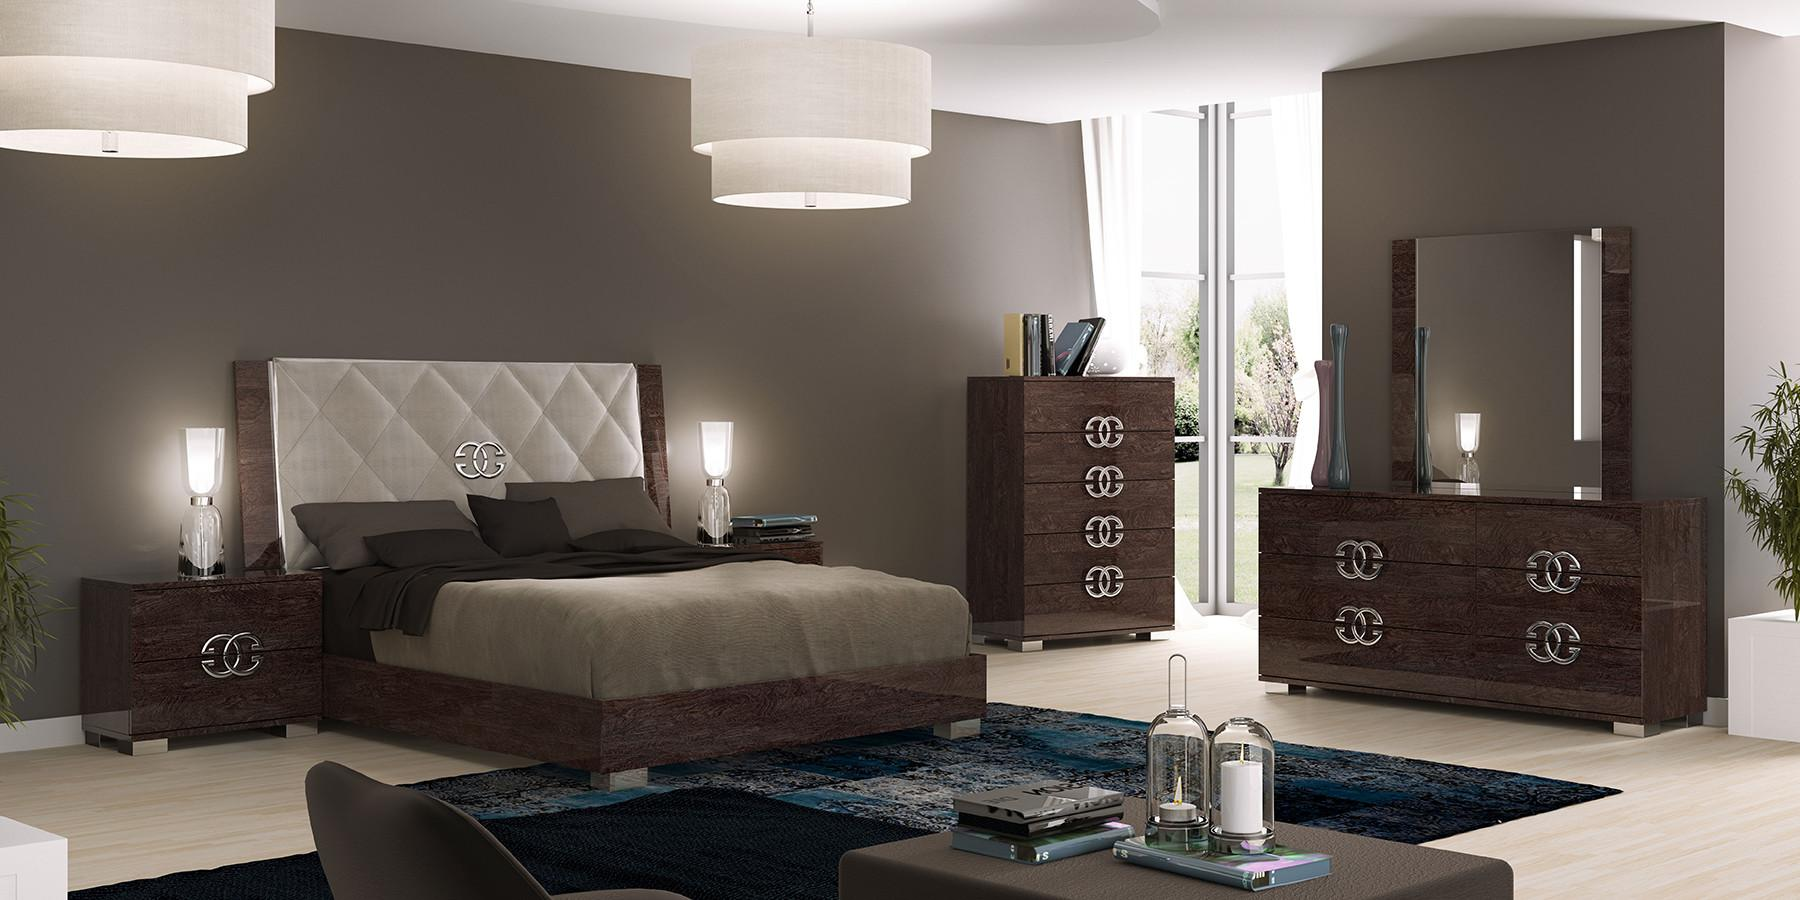 Prestige Deluxe Modern Bedrooms Bedroom Furniture